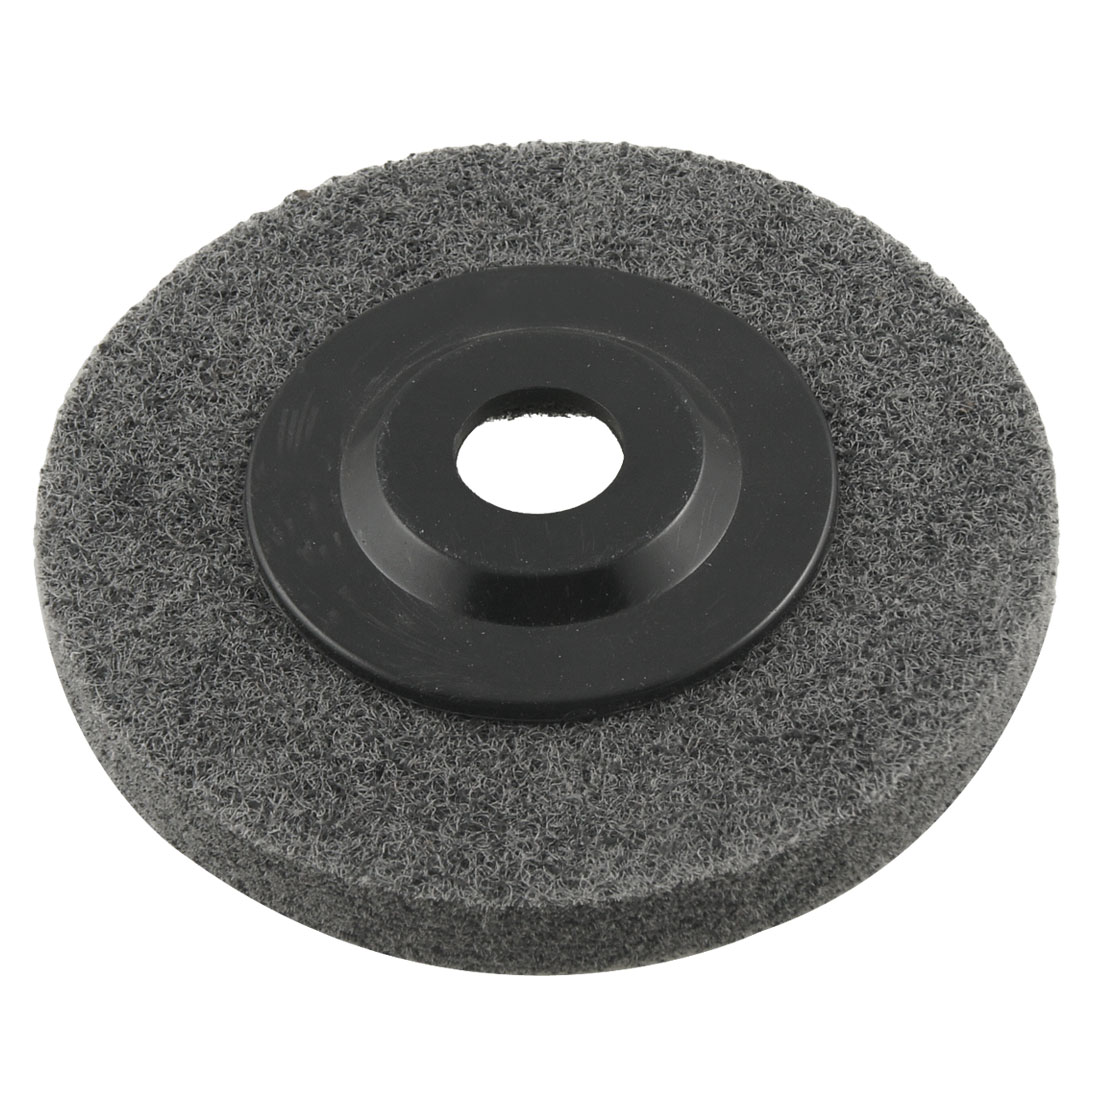 Gray 100mmx12mmx16mm Nylon Buffing Wheel Grinding Disc for Metal